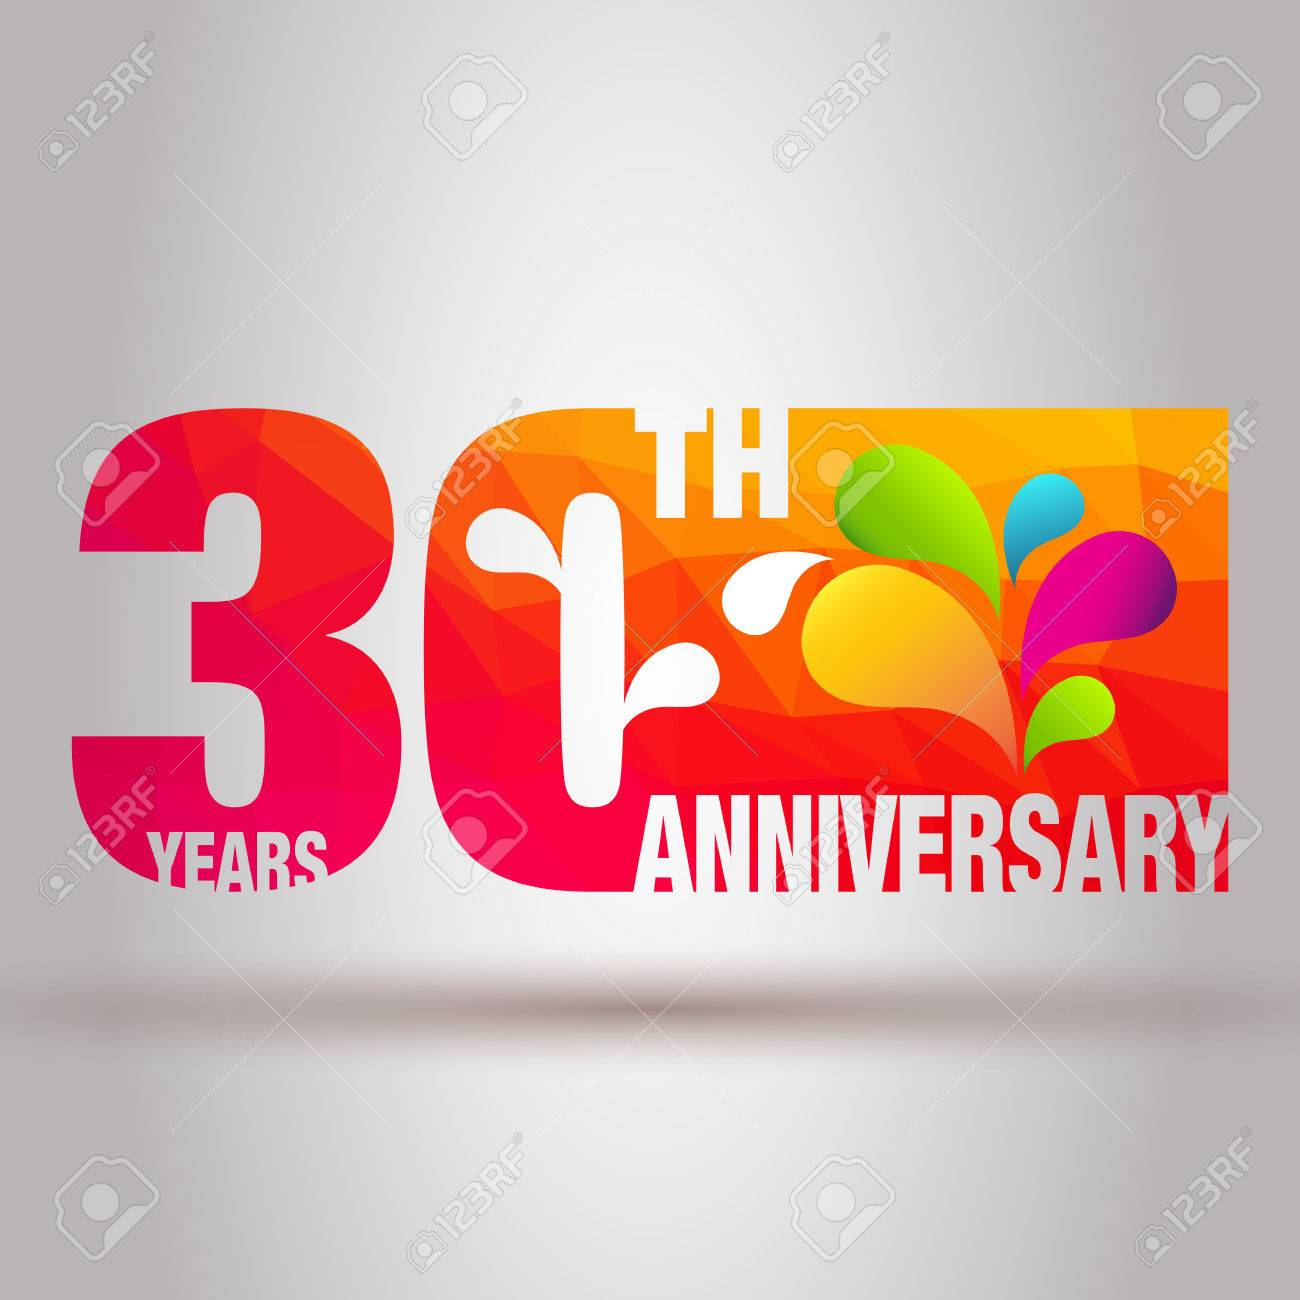 Anniversary Card. Anniversary Background. 30th Anniversary Template. Stock  Vector   65949651